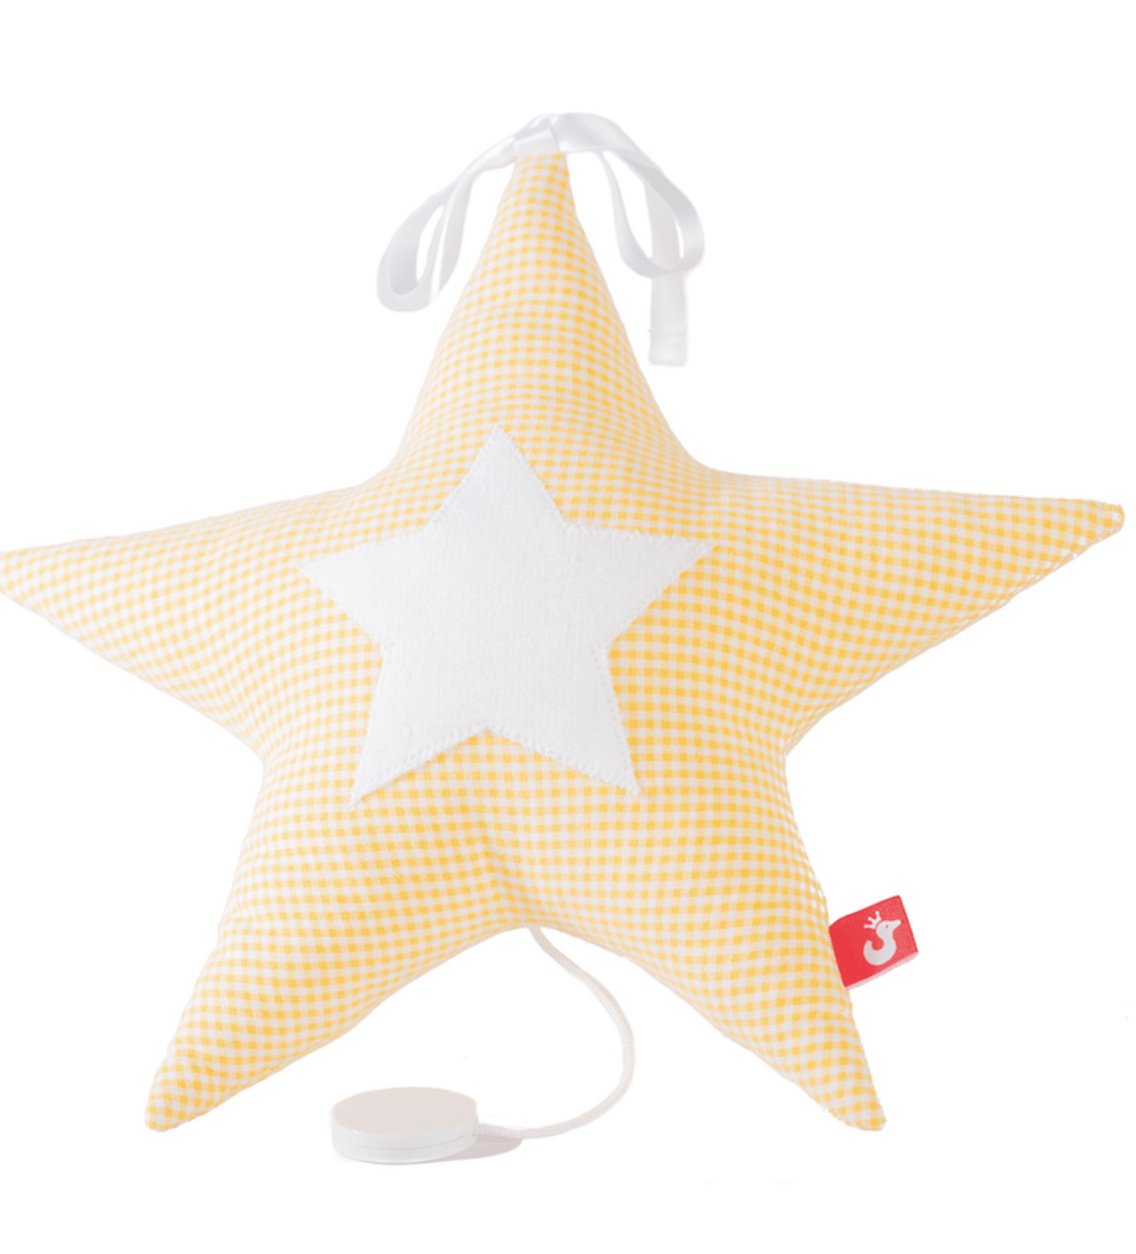 Music Toy  - STAR - Razberry Kids Co